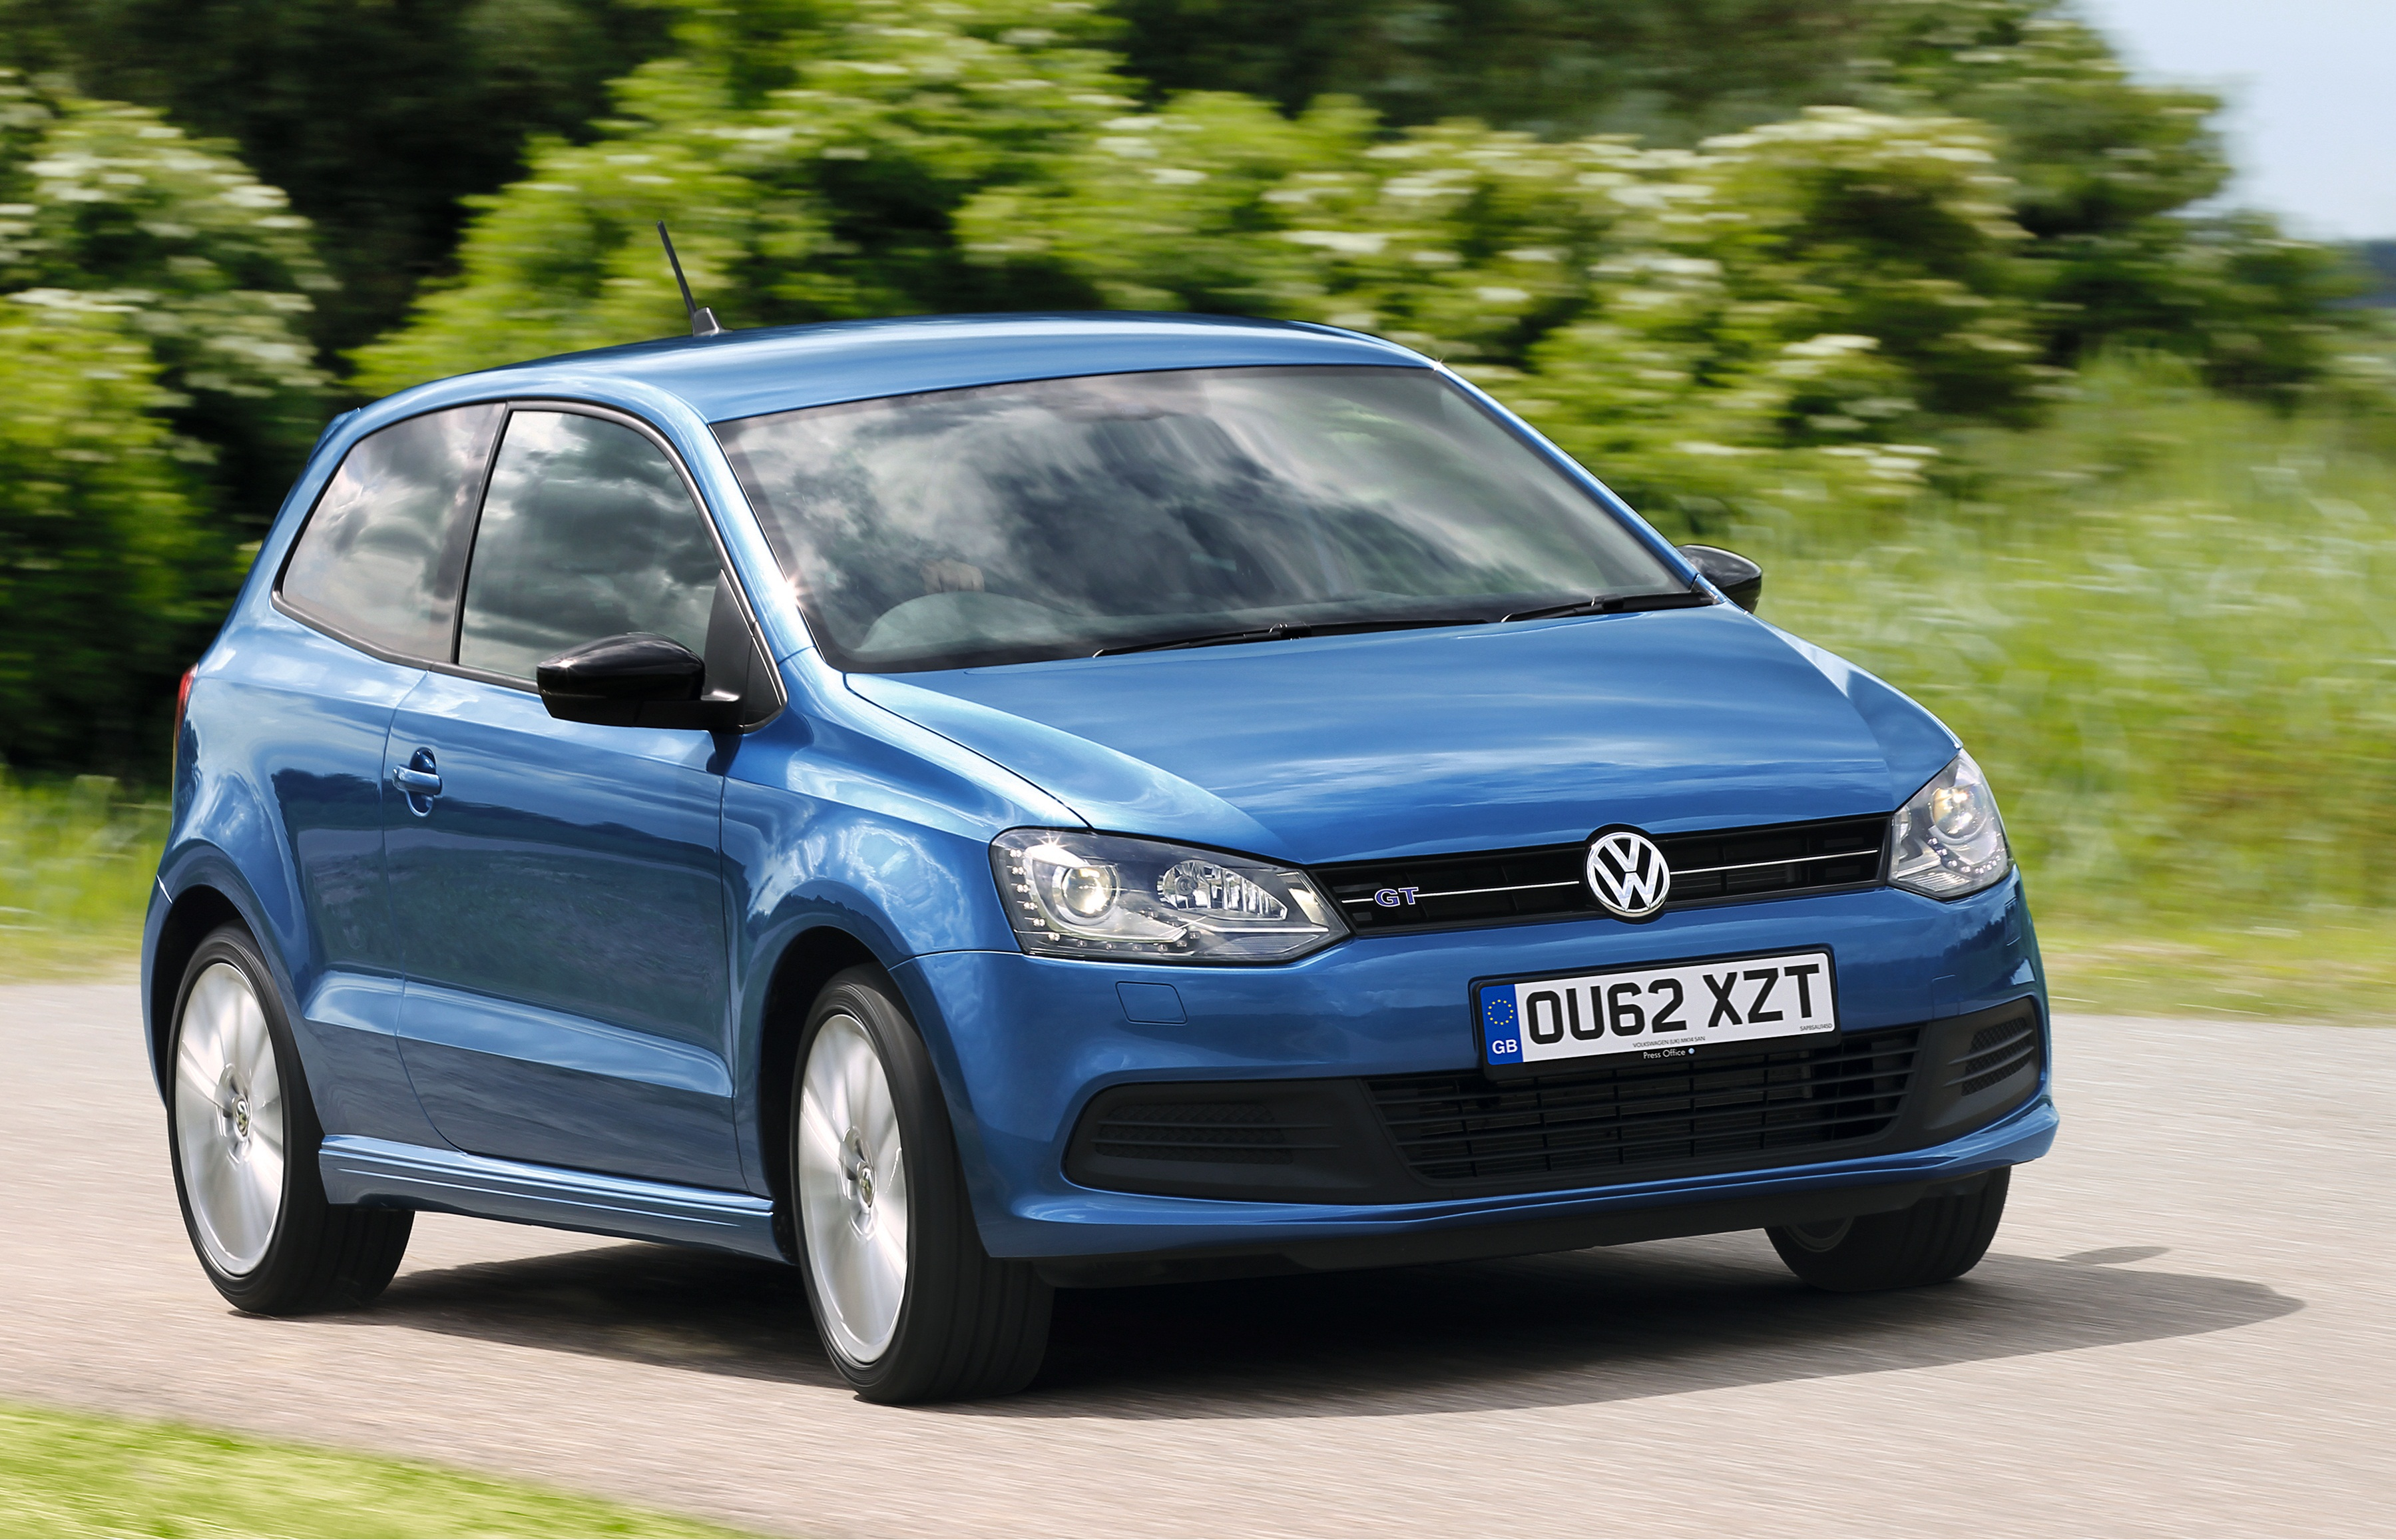 2013 Volkswagen Polo BlueGT Review - Top Speed